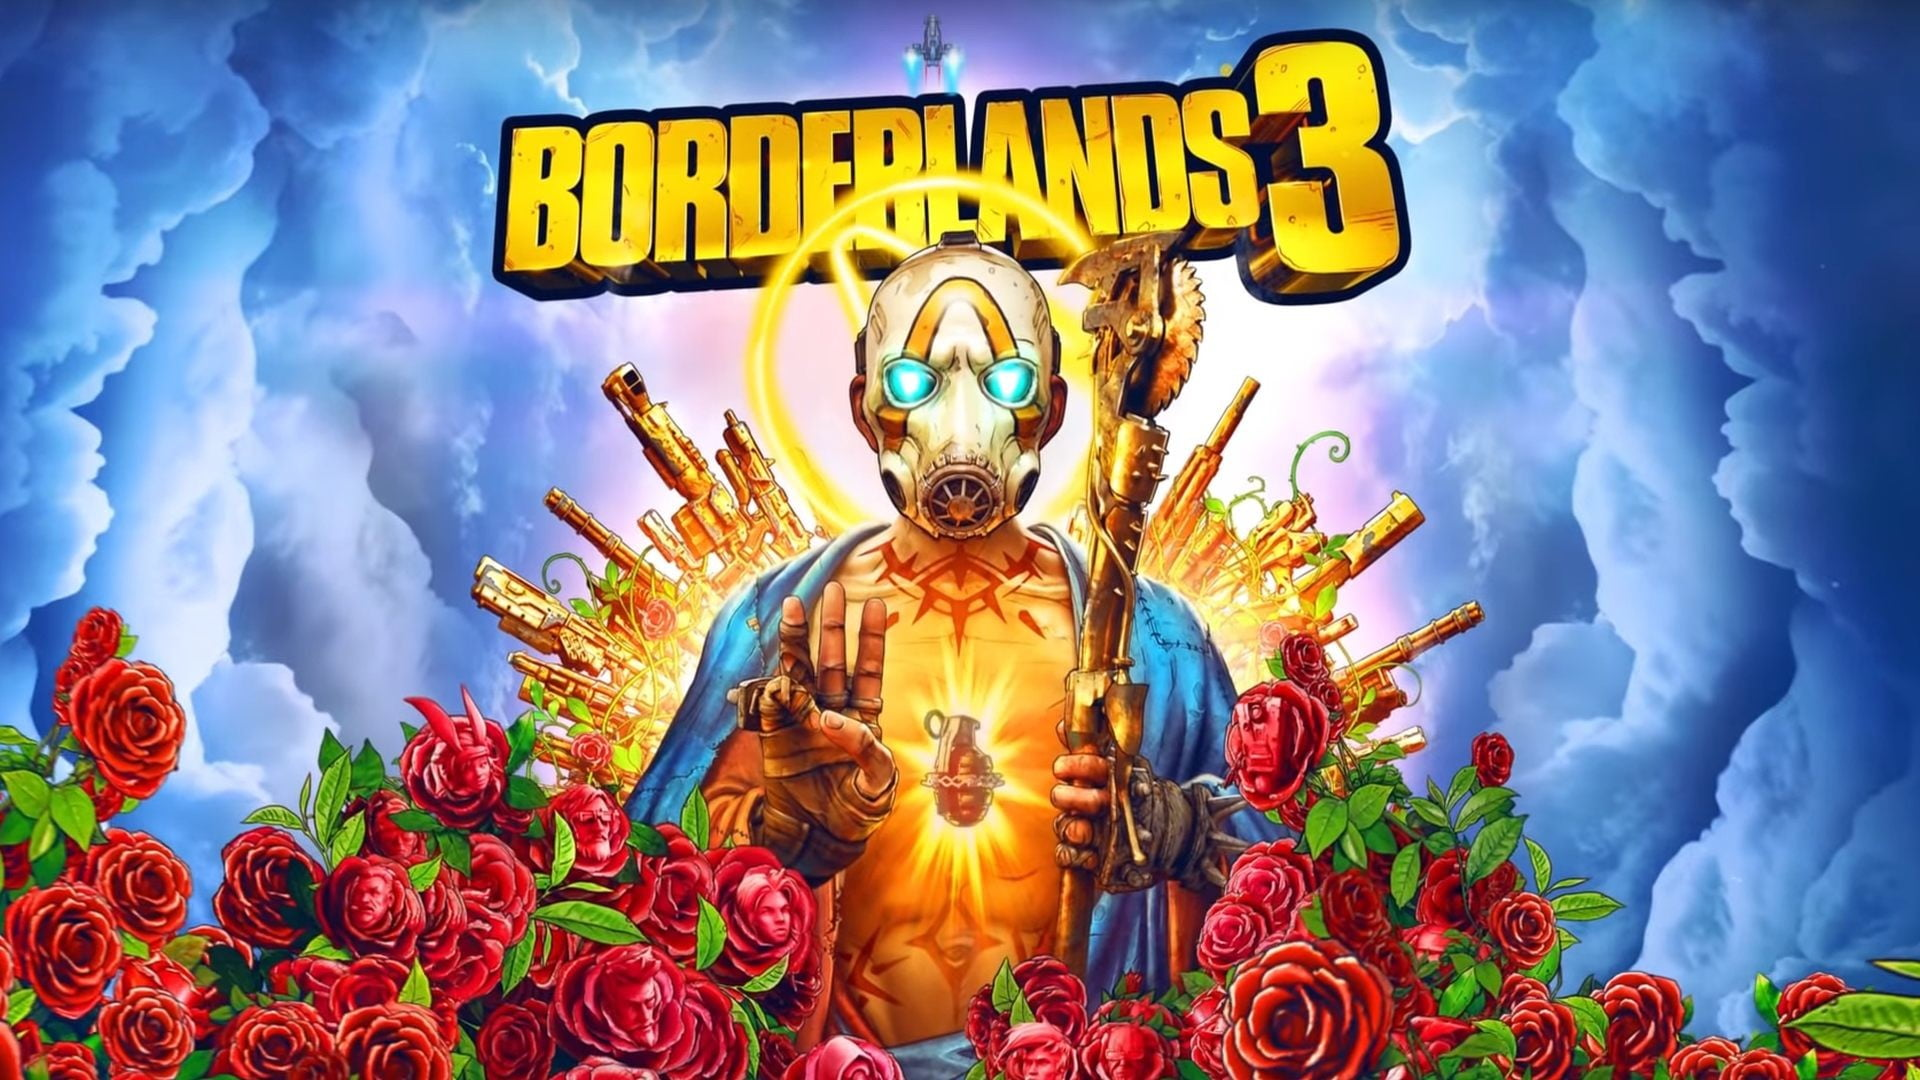 Twitch Extension Gives Borderlands 3 Stream Audiences a